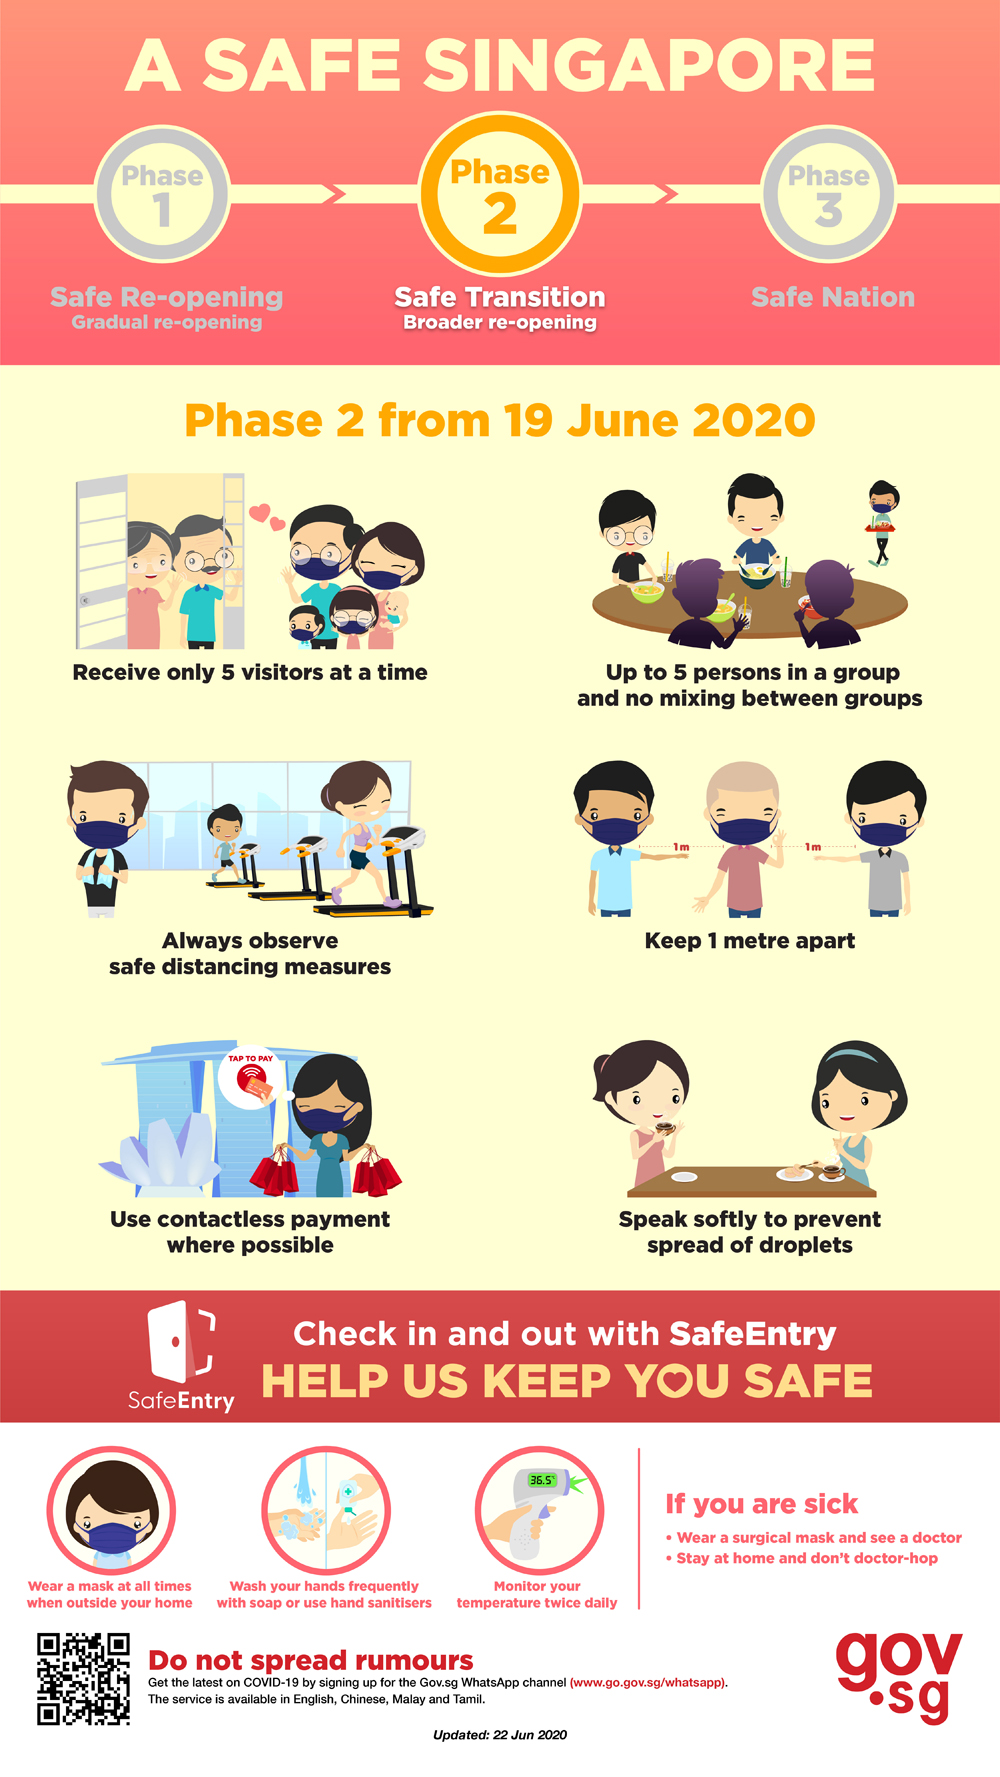 A Safe Singapore - Phase 2